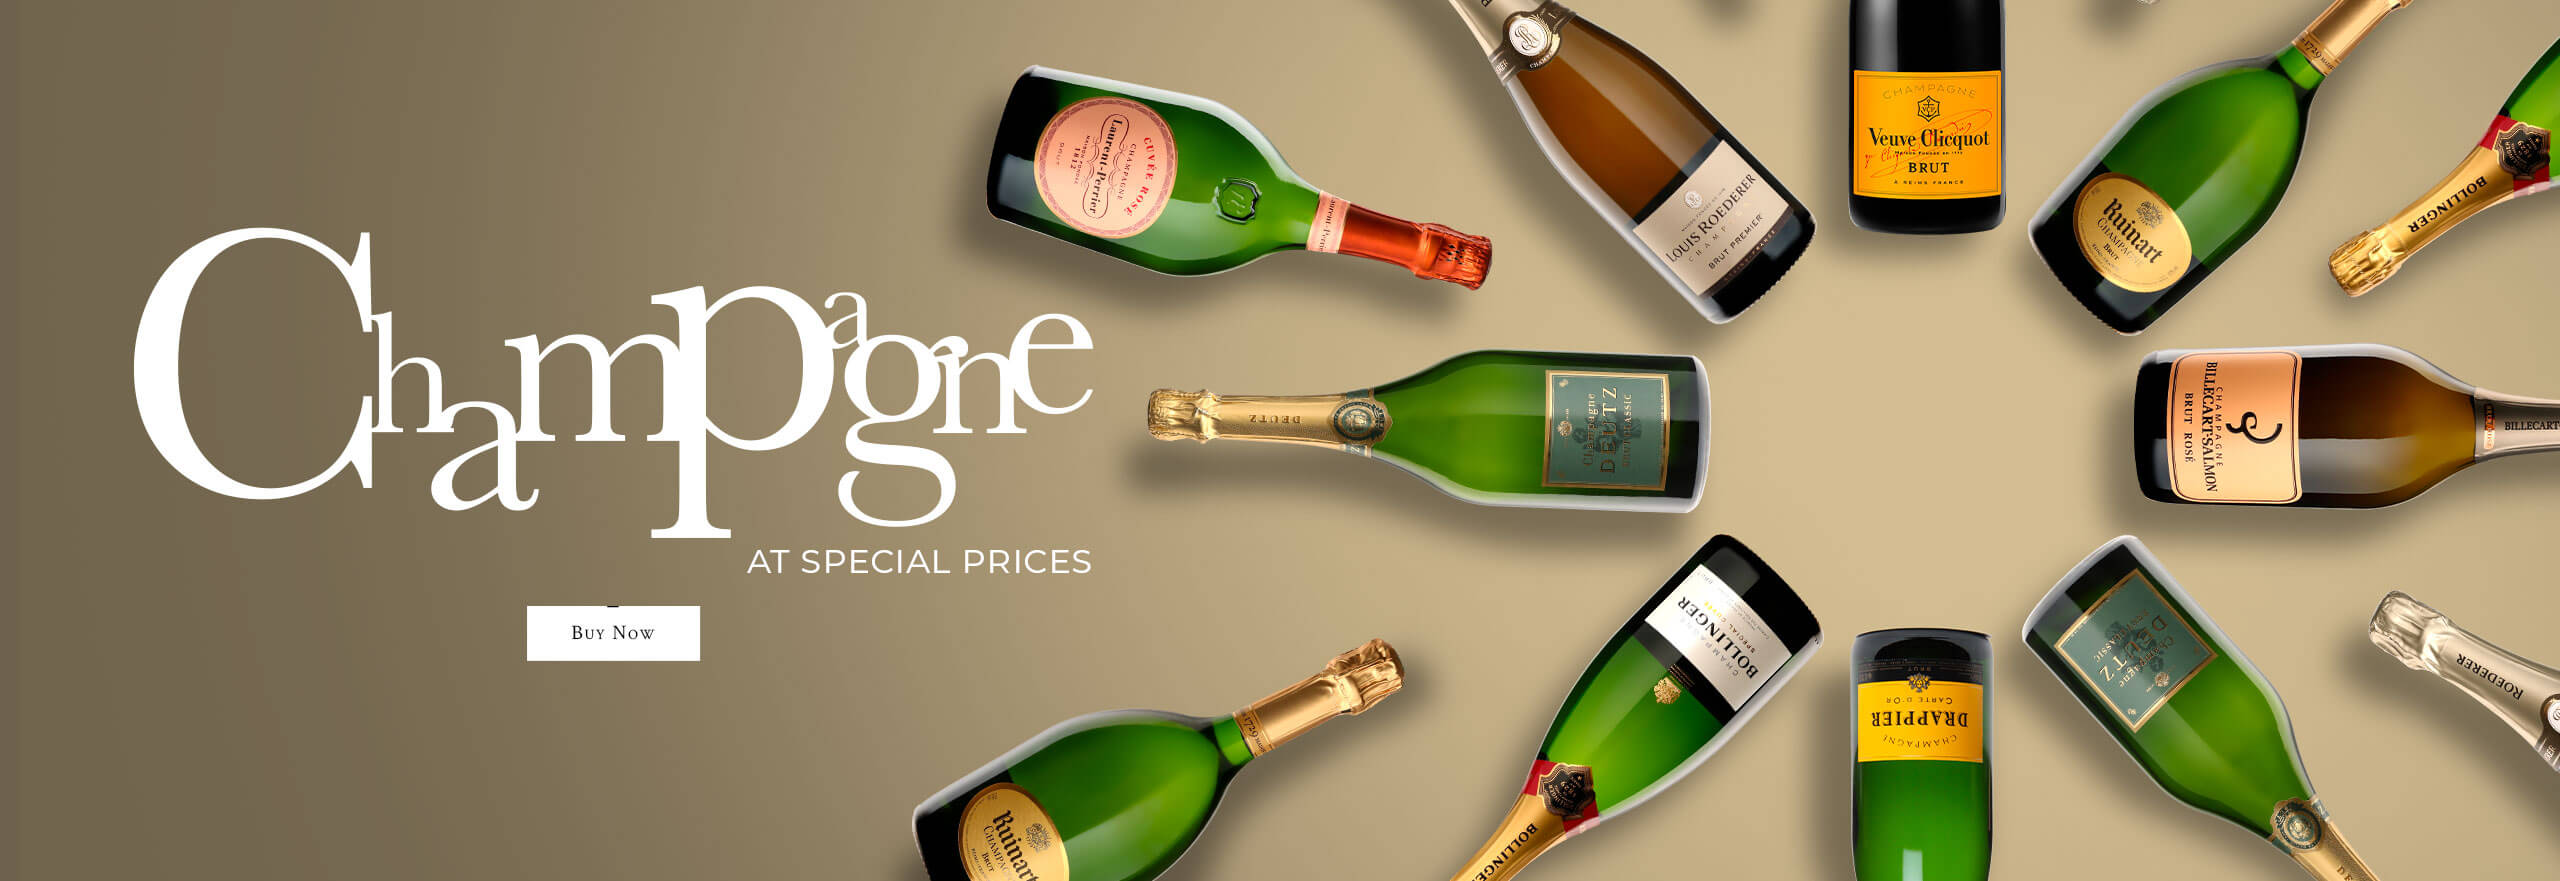 Champagne light prices